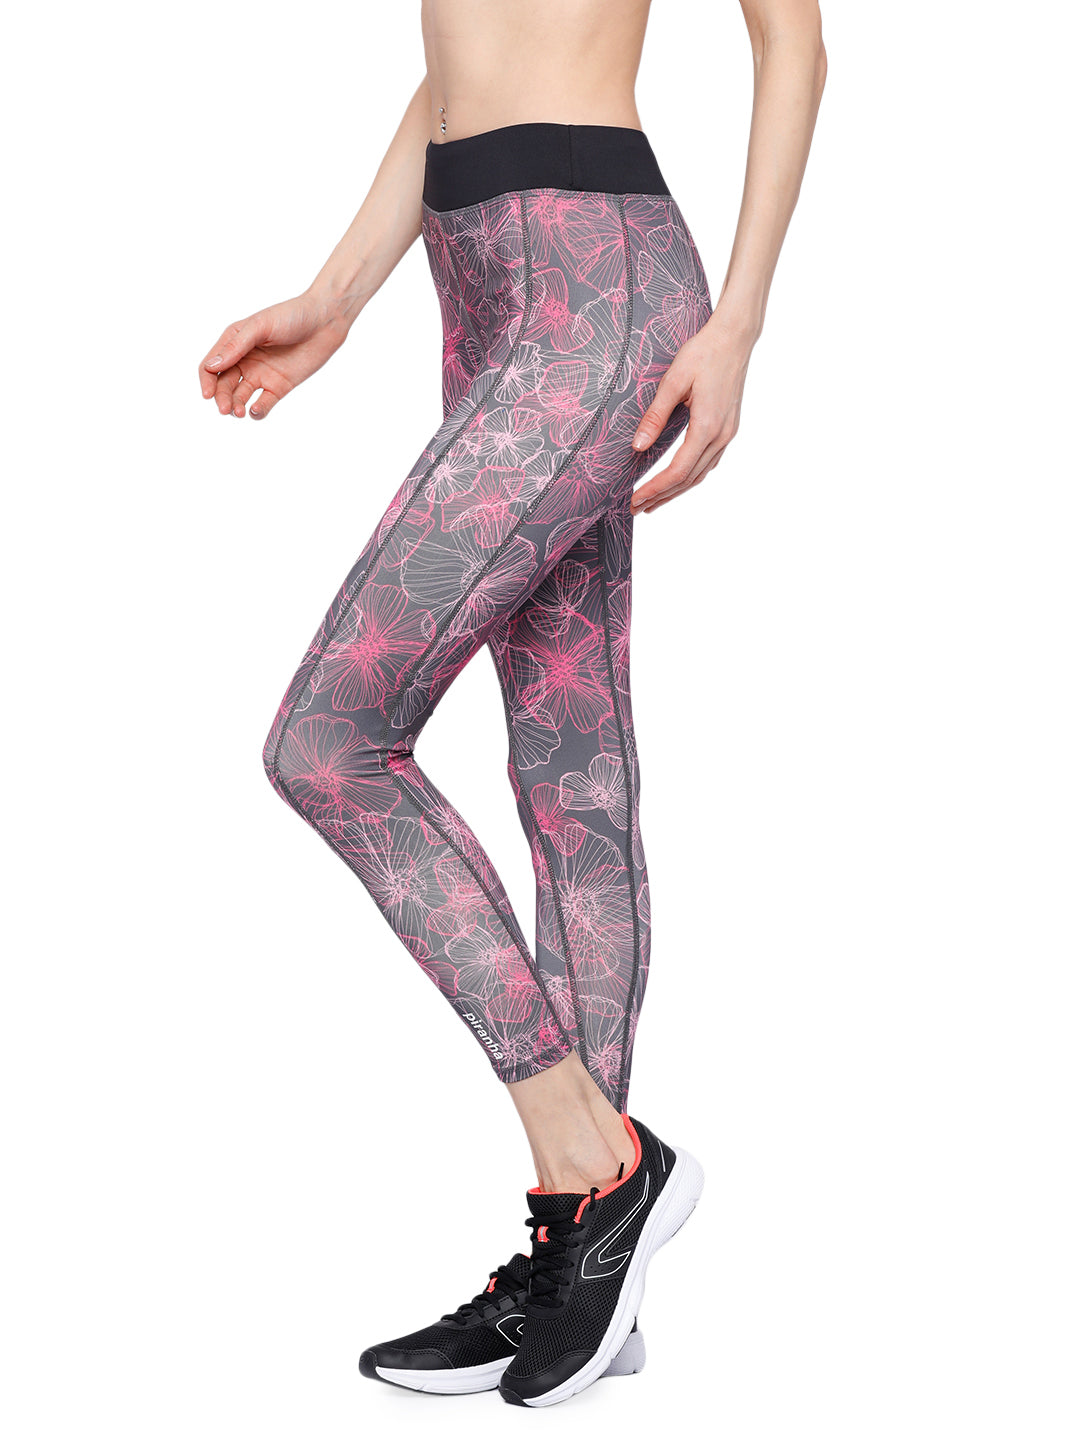 Piranha Women's Printed Yoga And Running Pants - YP187